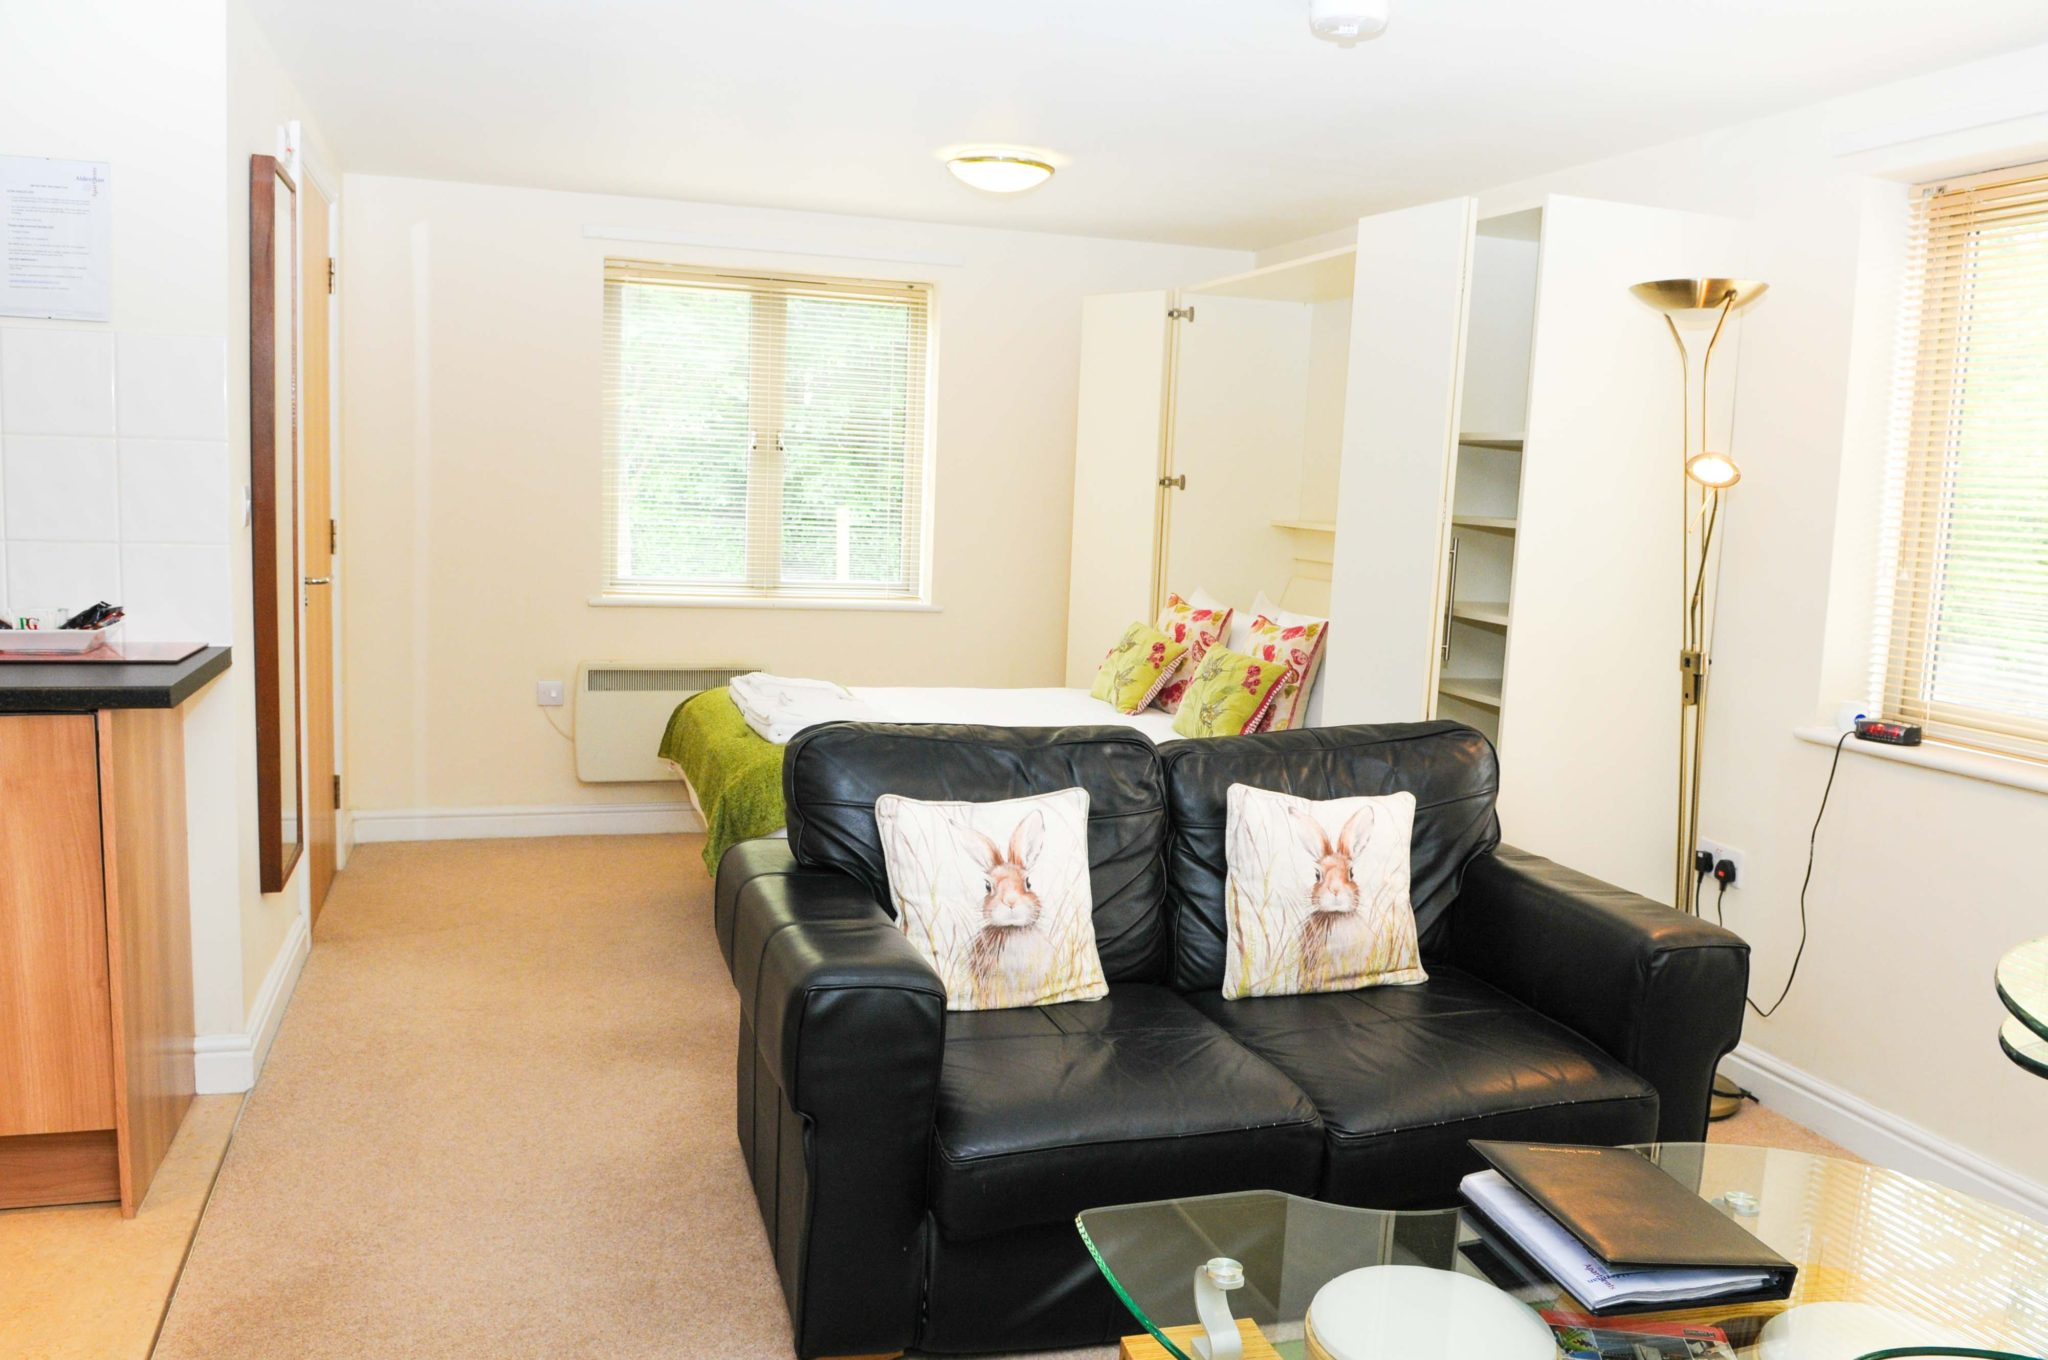 Bristol-Serviced-Accommodation-UK-|-Cheap-Cotham-Lawn-Apartments-|-Free-Wi-Fi|-Fully-Equipped-Kitchen-|-Parking-|0208-6913920|-Urban-Stay